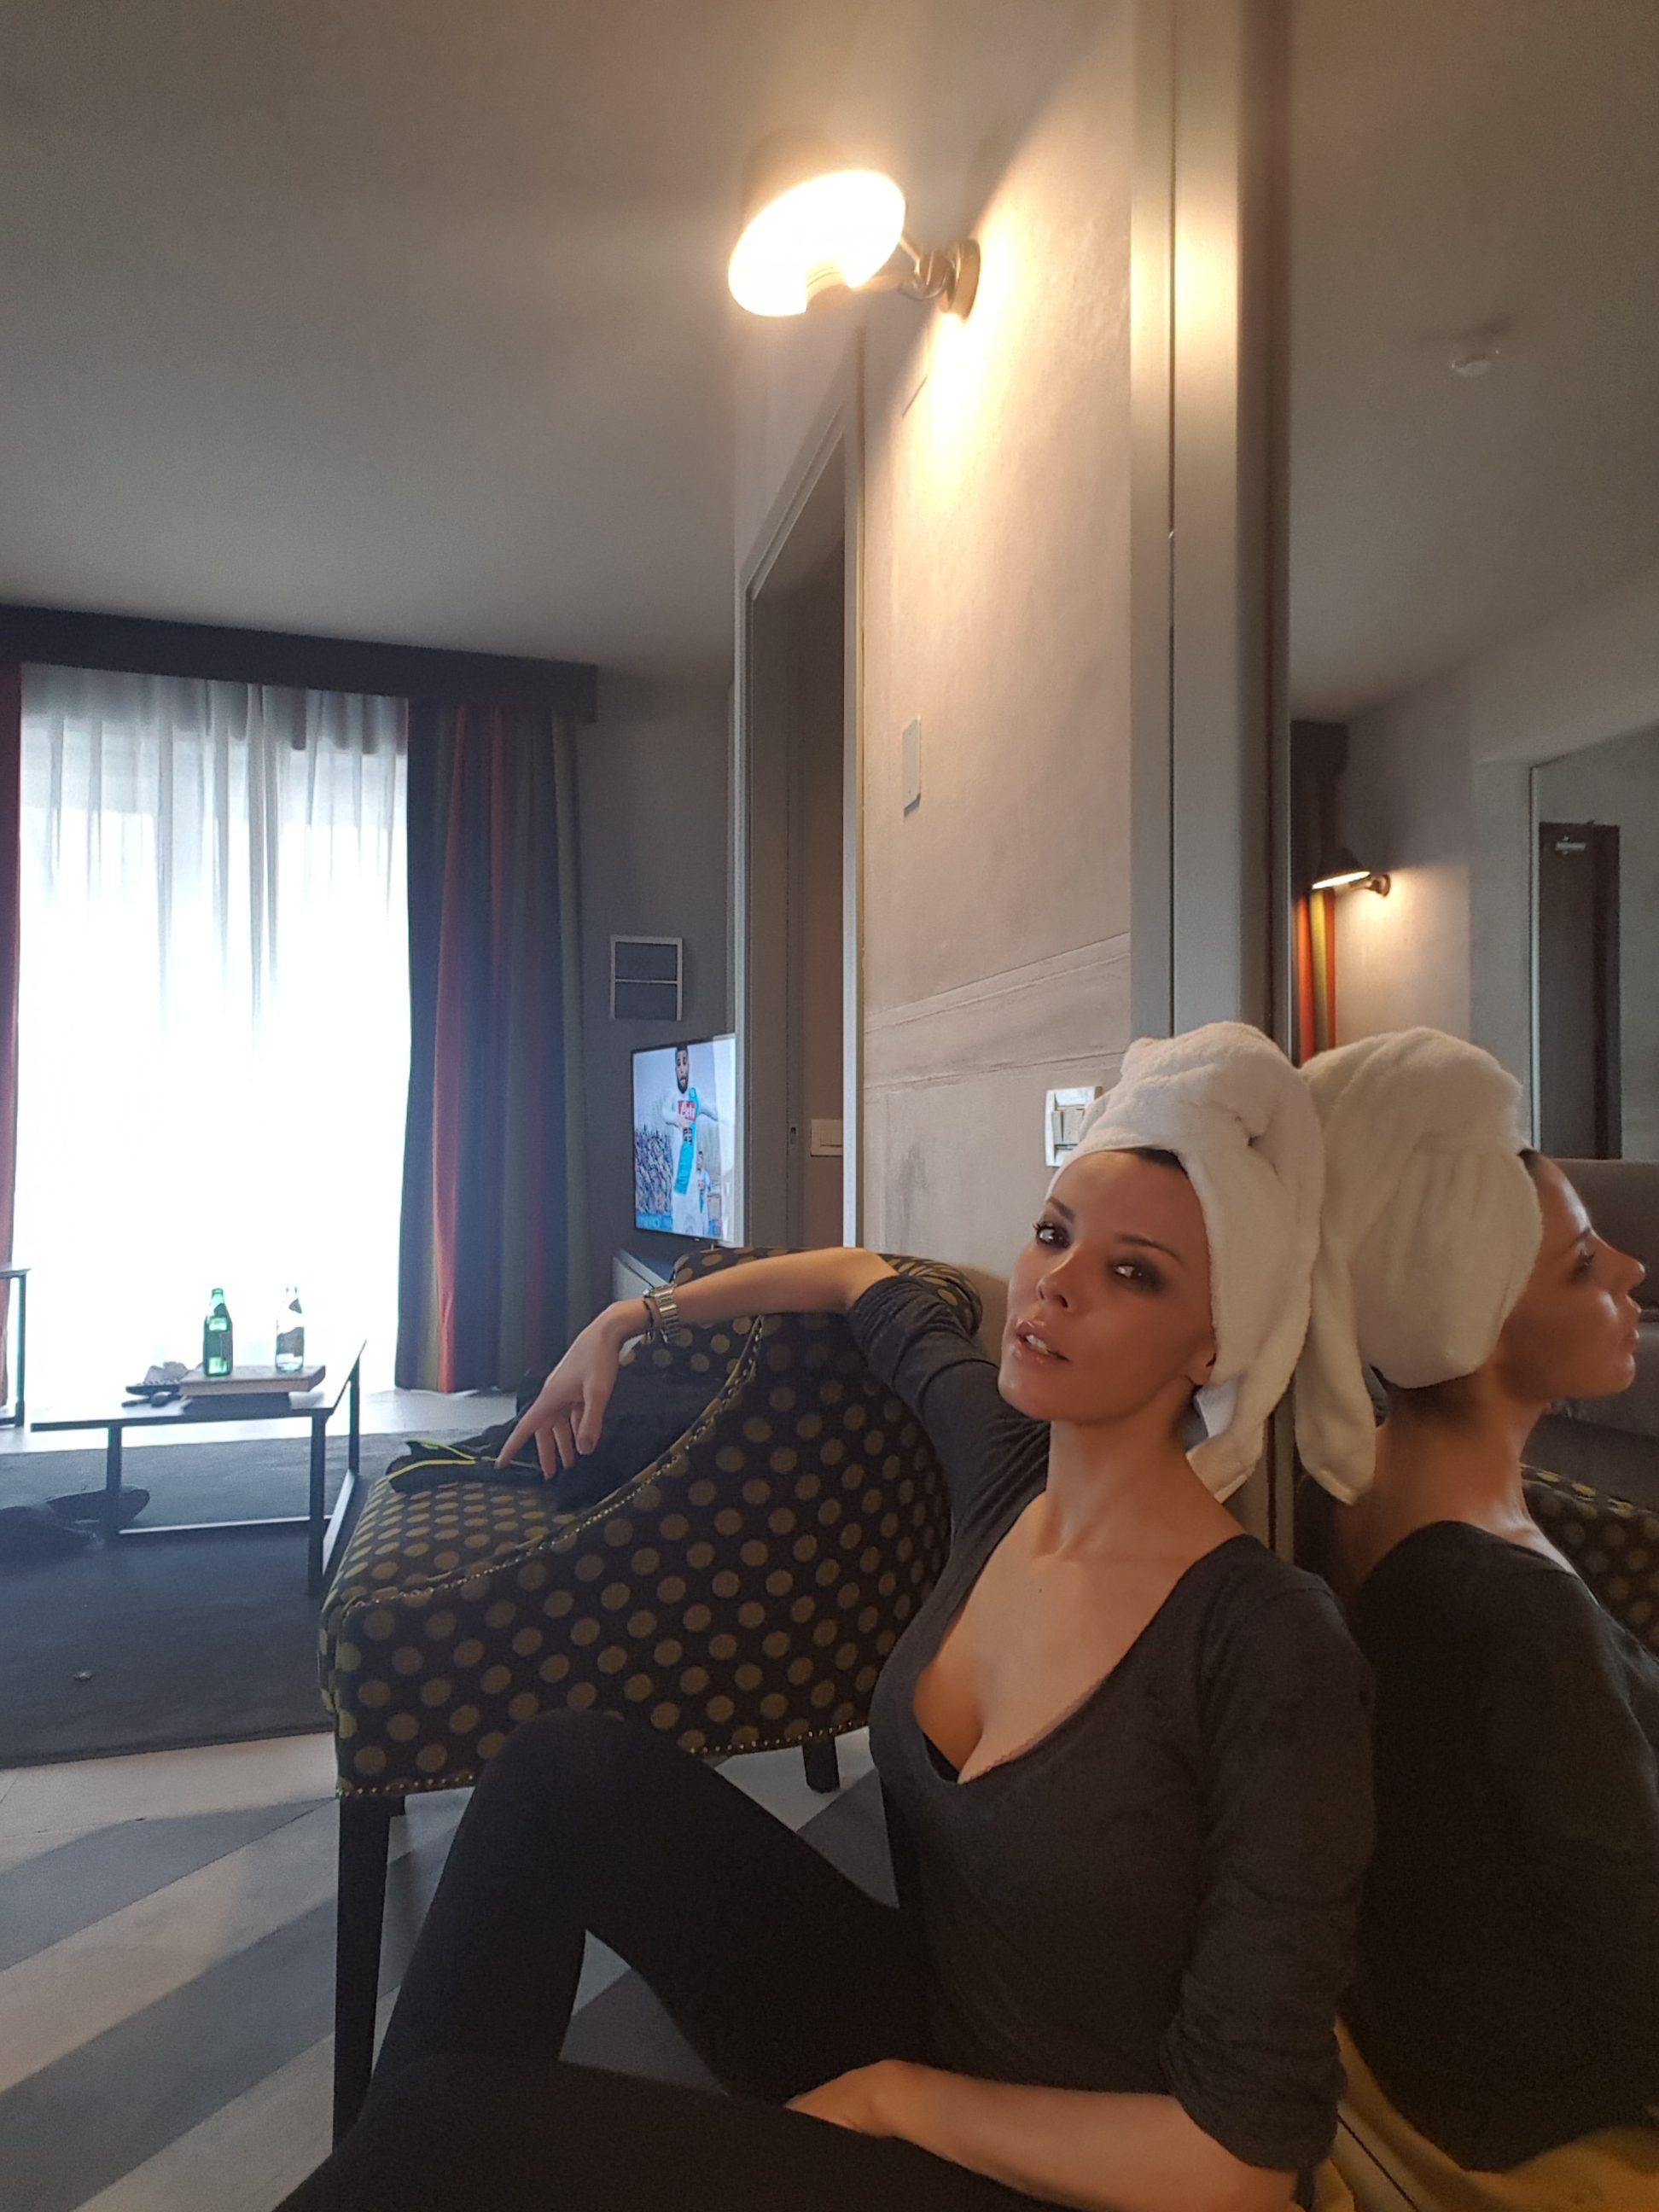 Fifty_House_Milan_lenasblackbook_best_hotels_Milan (1)